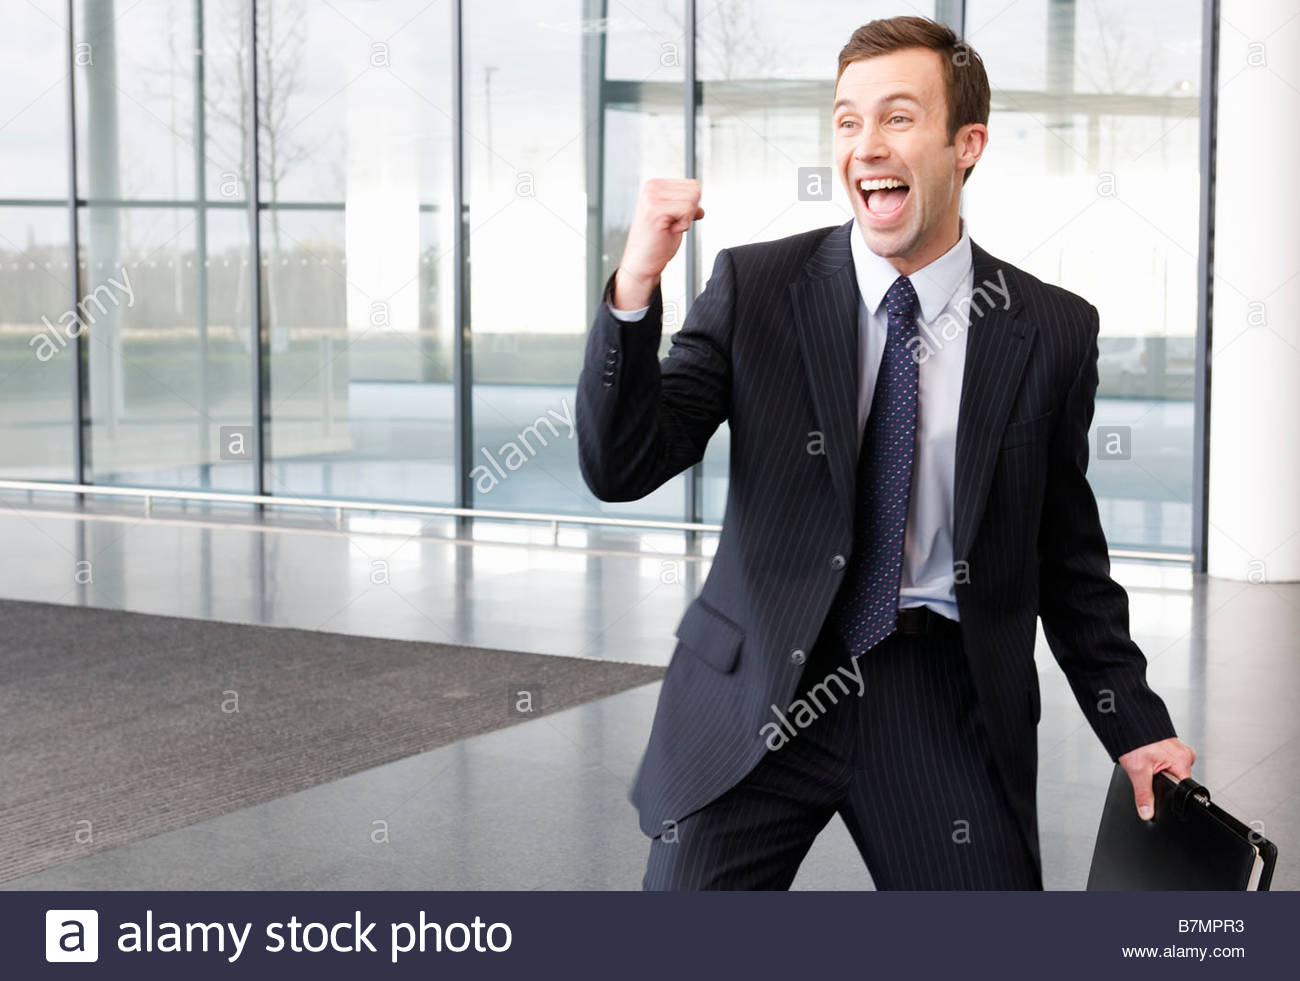 A successful job applicant or businessman making triumphal gesture - Stock Image